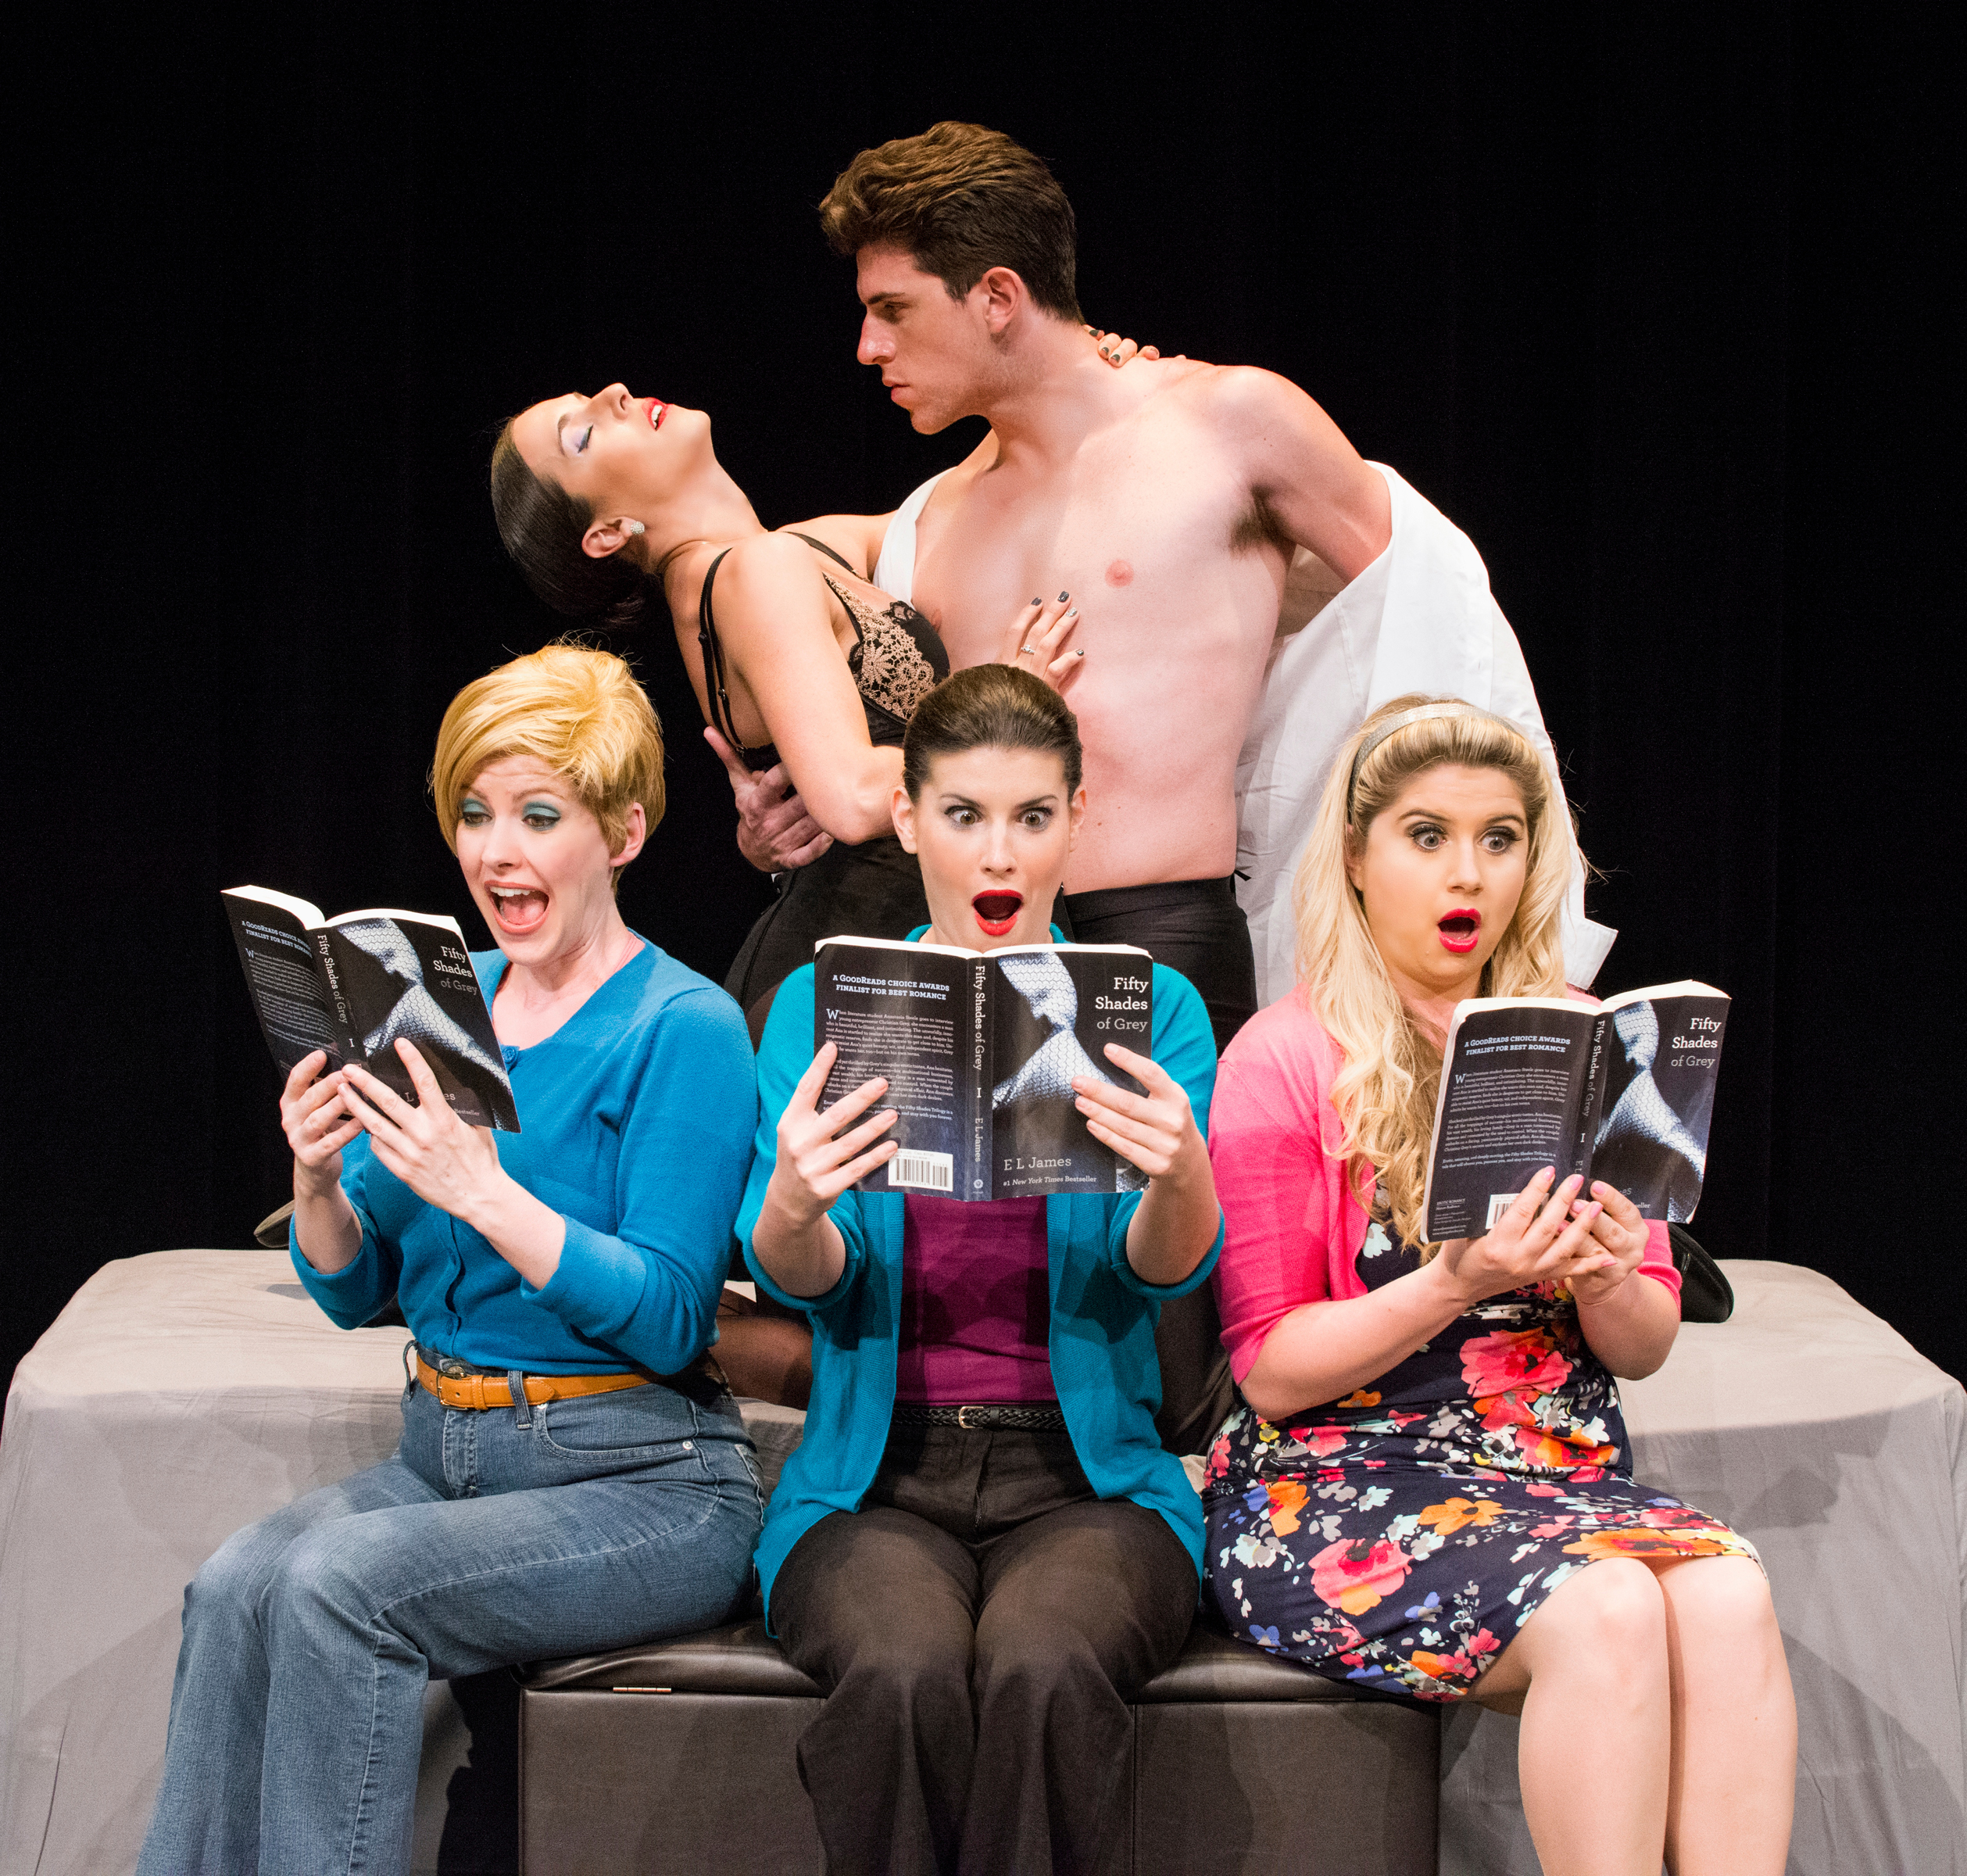 BWW Reviews: 50 SHADES! THE MUSICAL is a Raunchy Romp